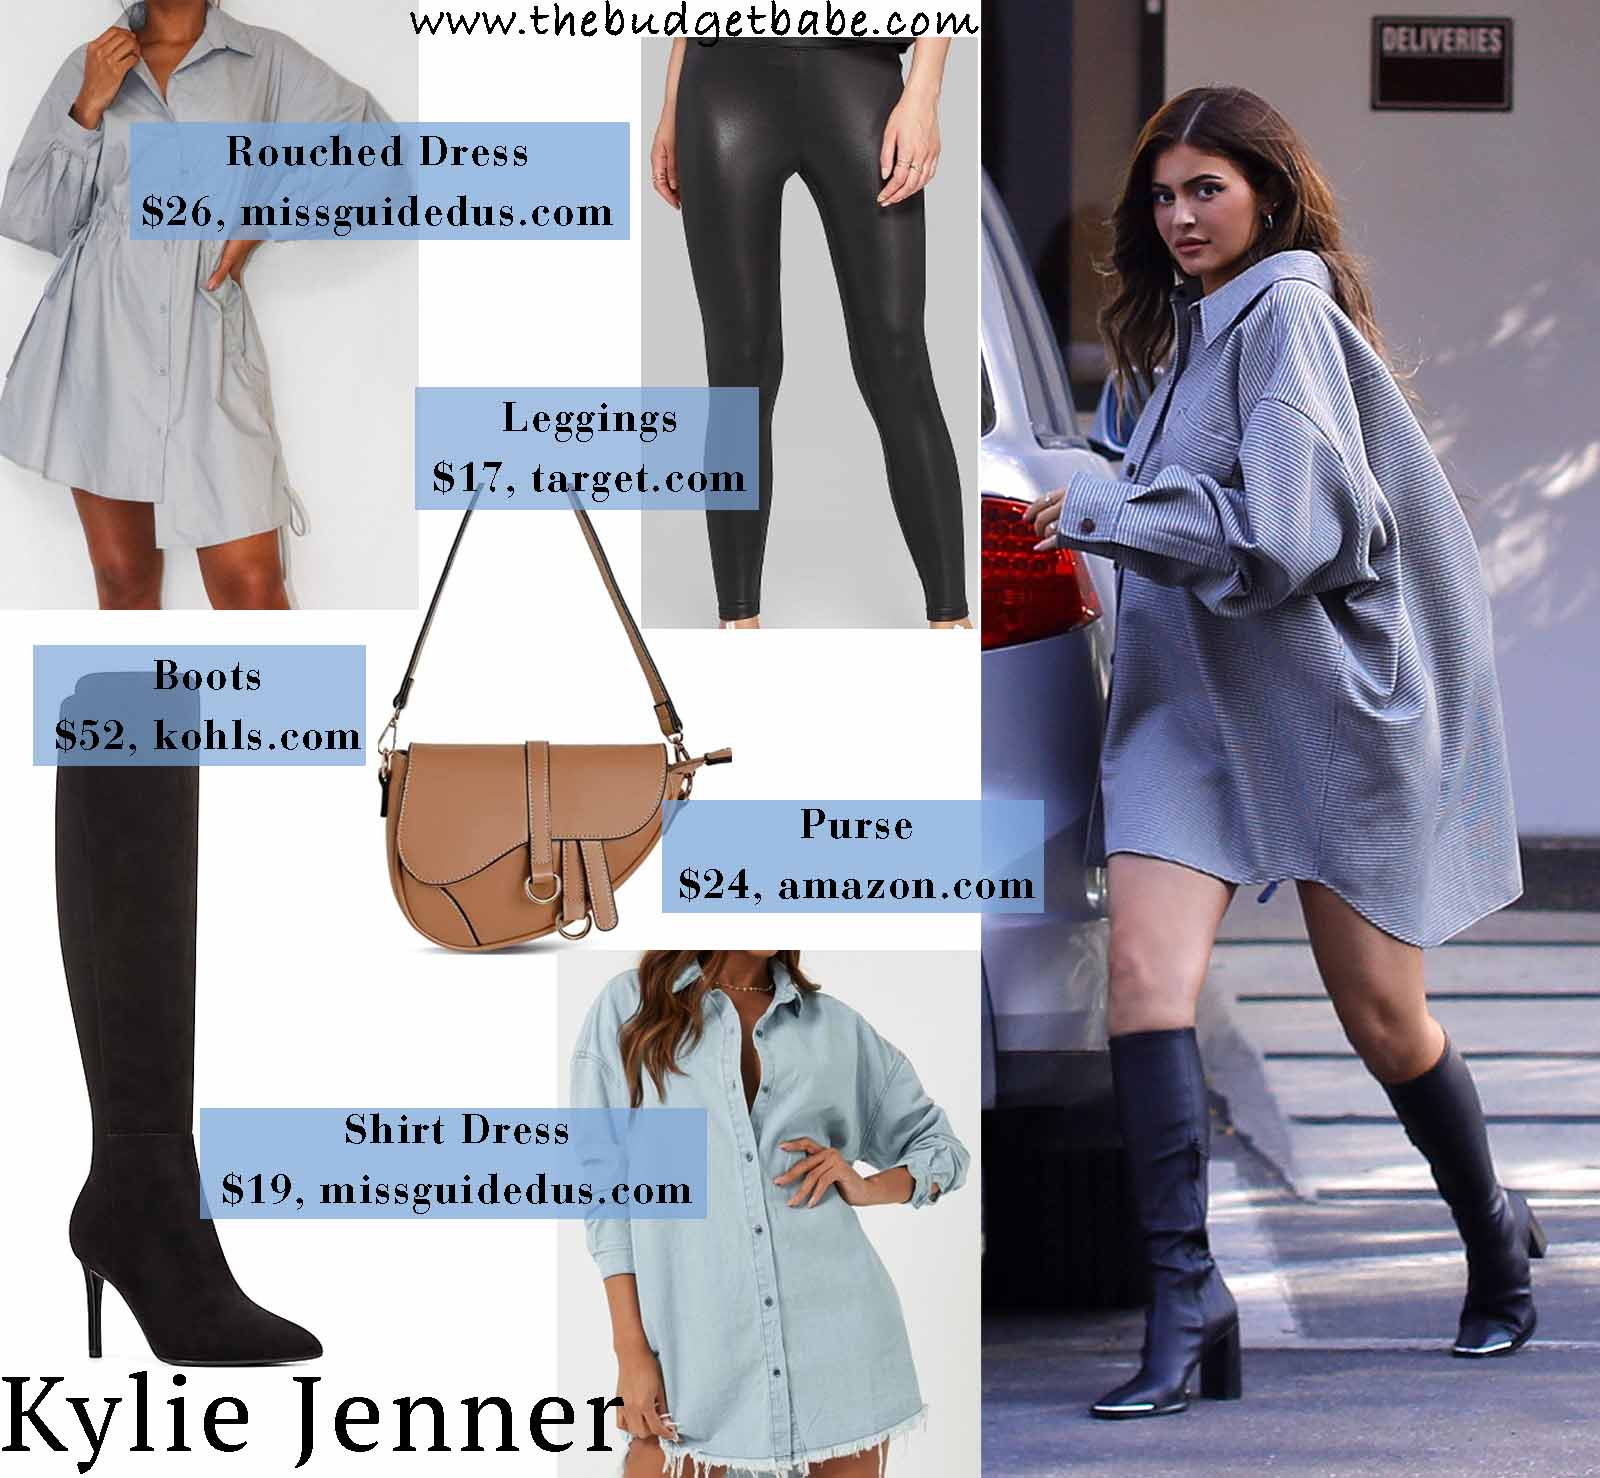 Kylie's feminine take on menswear